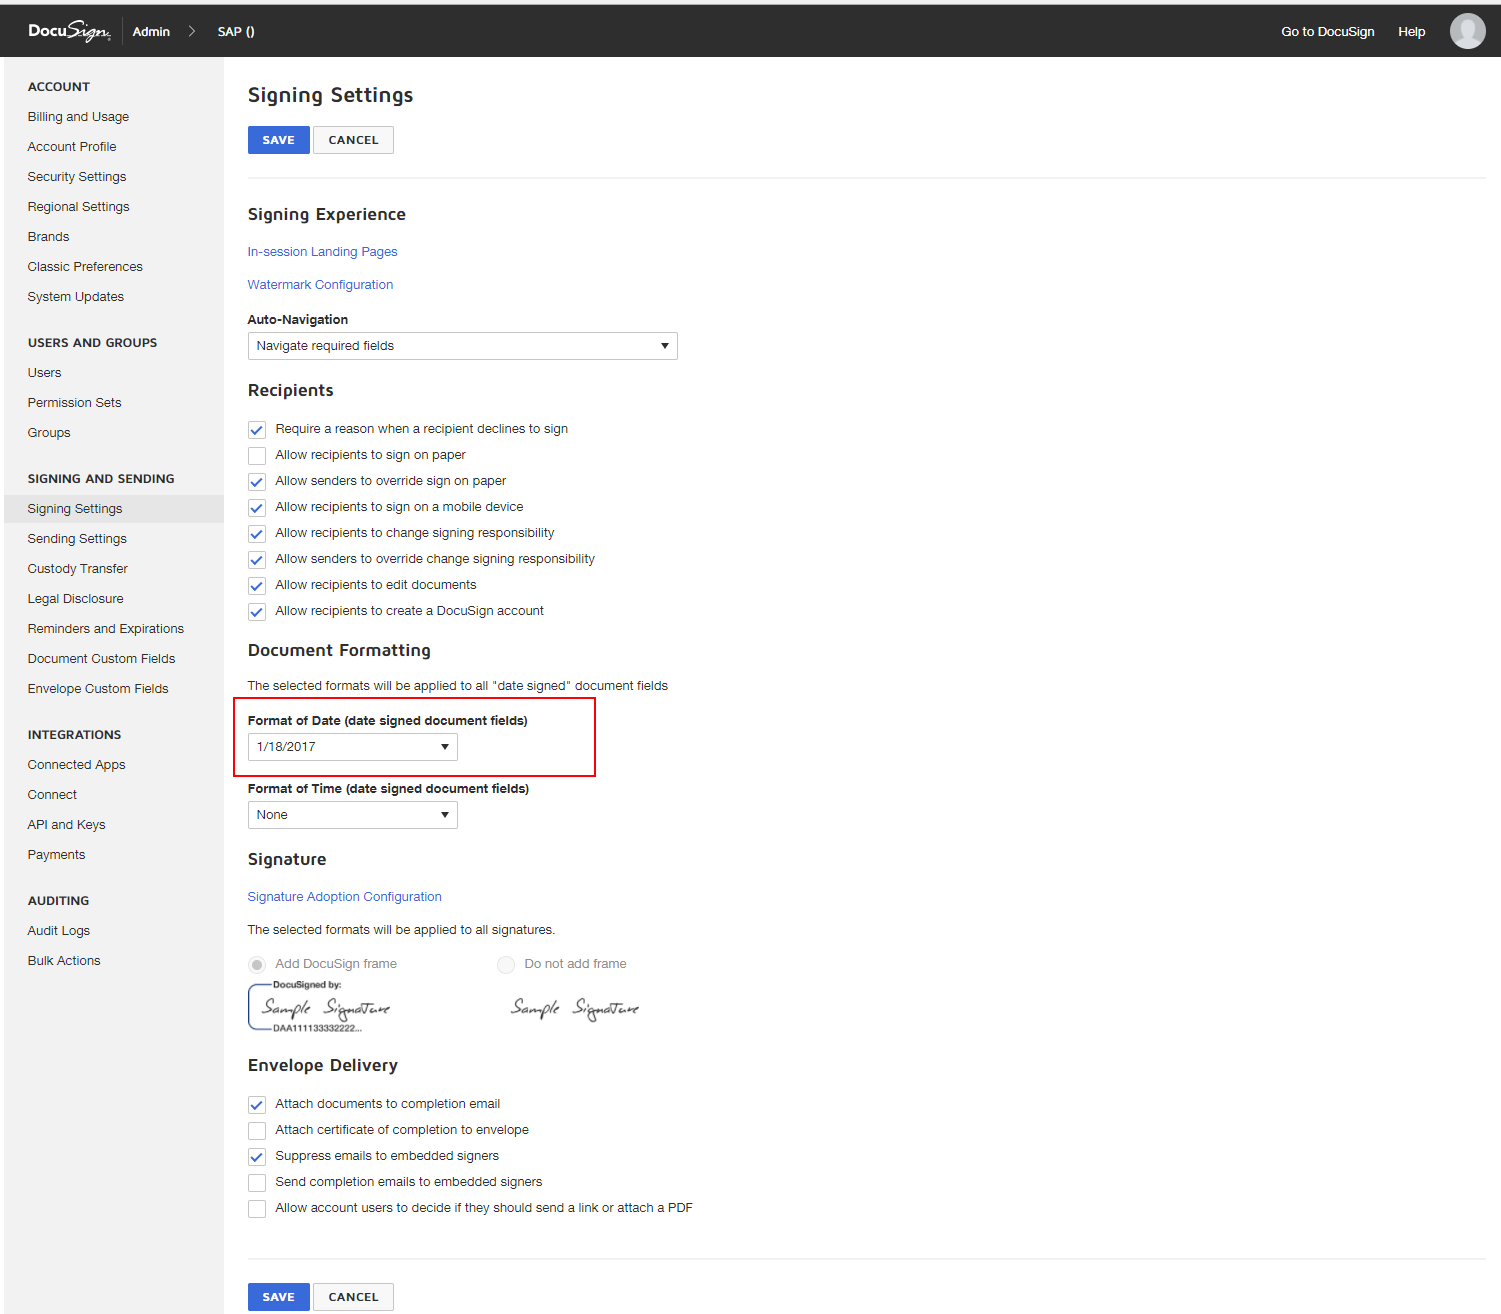 DocuSign Admin signing settings configuration.png